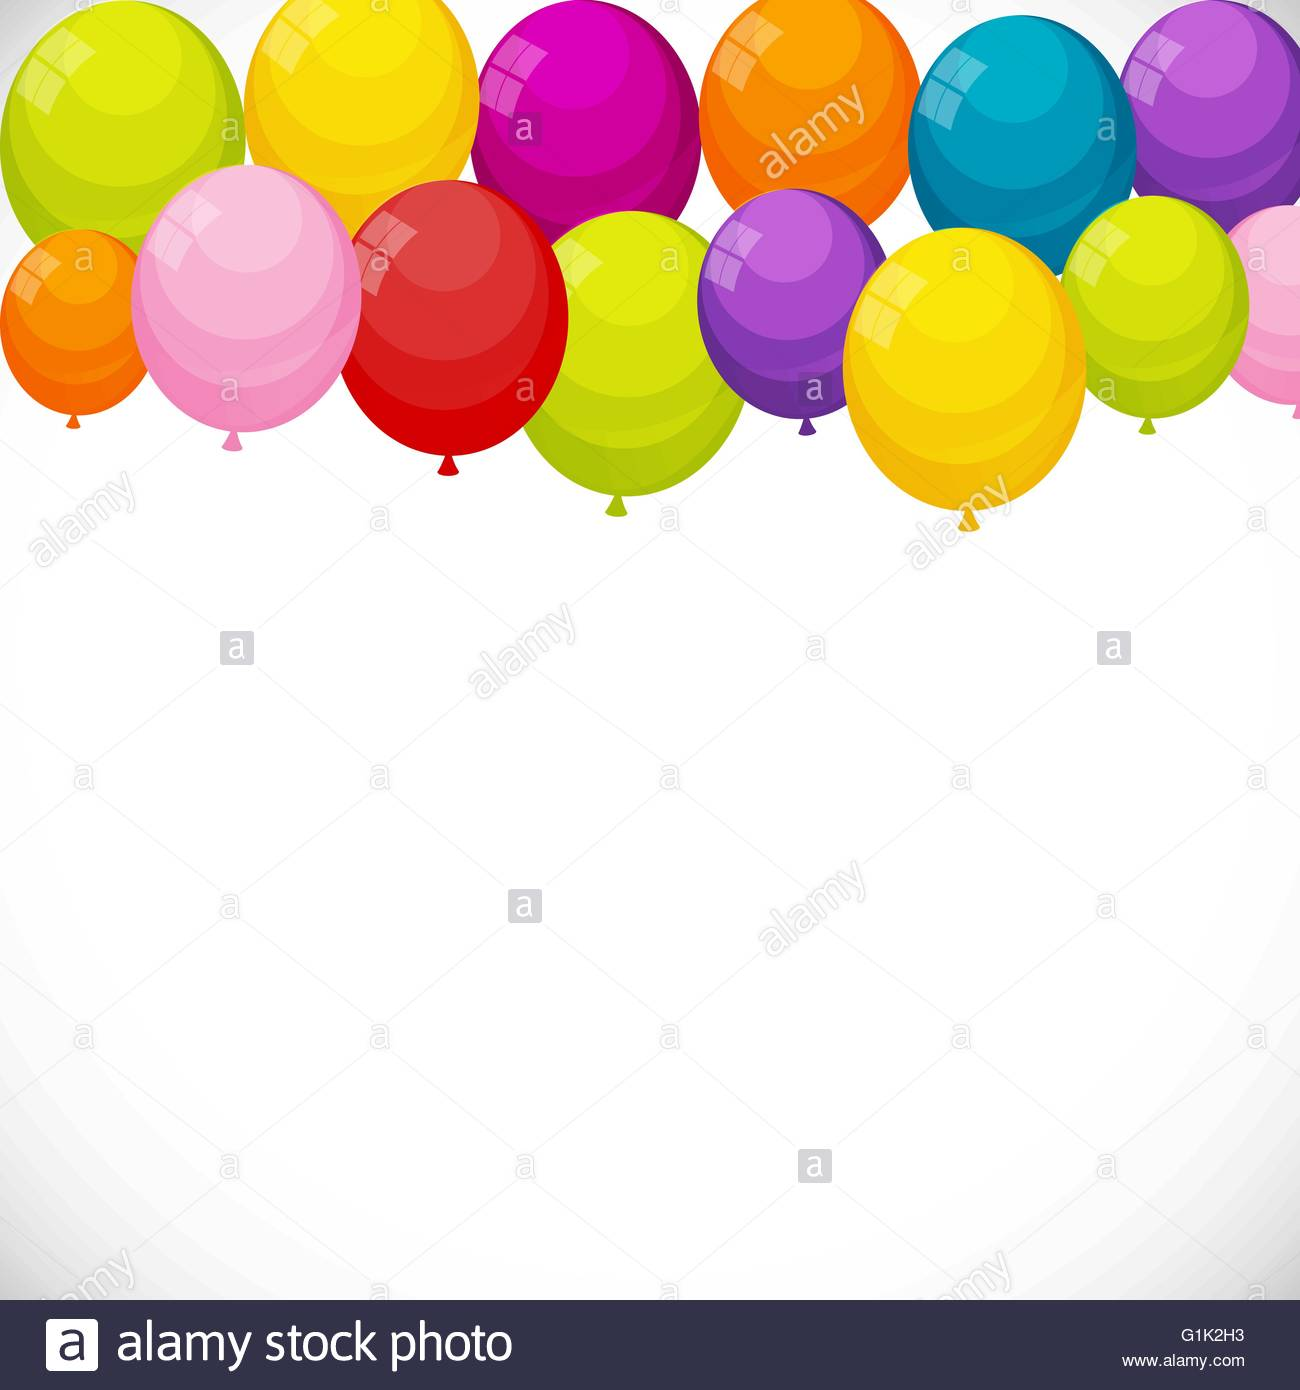 birthday banner background images ; color-glossy-happy-birthday-balloons-banner-background-vector-G1K2H3